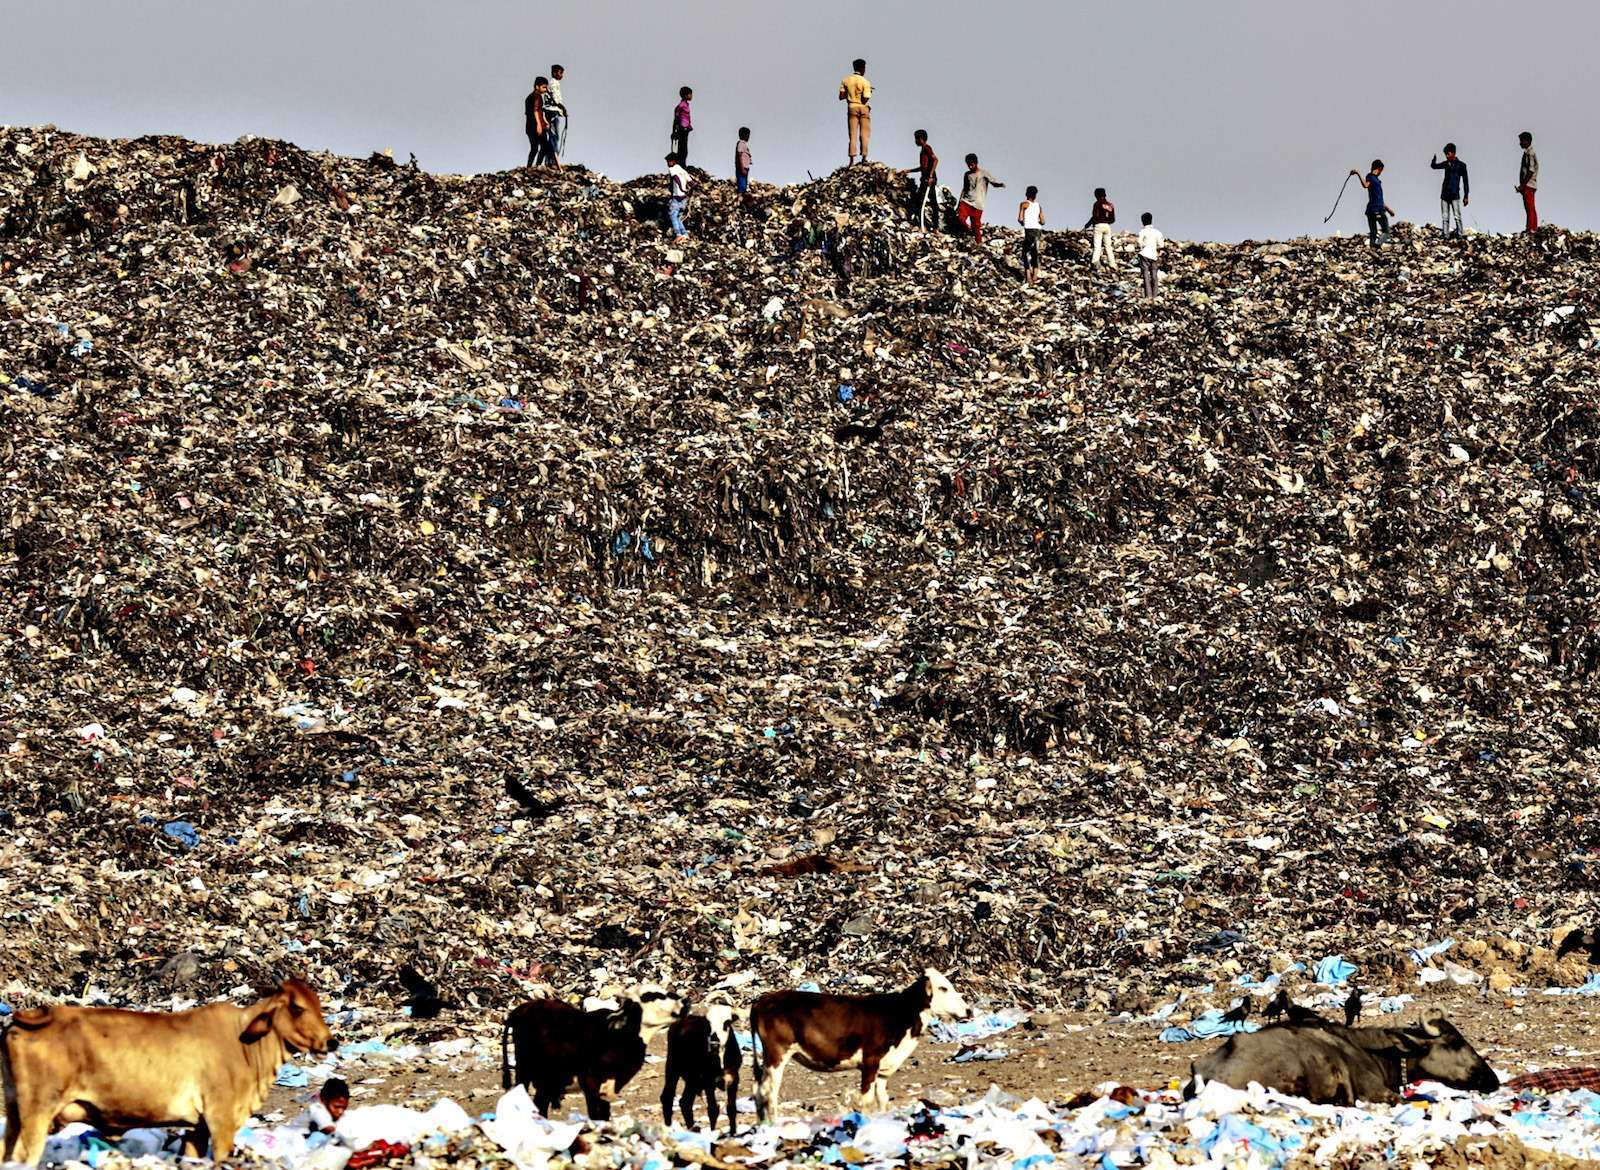 Garbage AtThe Deonar Landfill Site AsTrash Mountain Rising inMumbai Swamps Modi 21st Century Vision...Boys play ascows graze through garbage atthe Deonar landfill site inMumbai, India, onWednesday, March 11, 2015. Mumbai isrunning out ofspace for its waste, and Deonar, Asia's oldest and largest dumpsite, isbursting. Each day, more than 500 trucks line upalong atwo-lane dirt road inaneastern suburb, waiting toadd toamountain ofrefuse tall enough tosubmerge the White House twice over